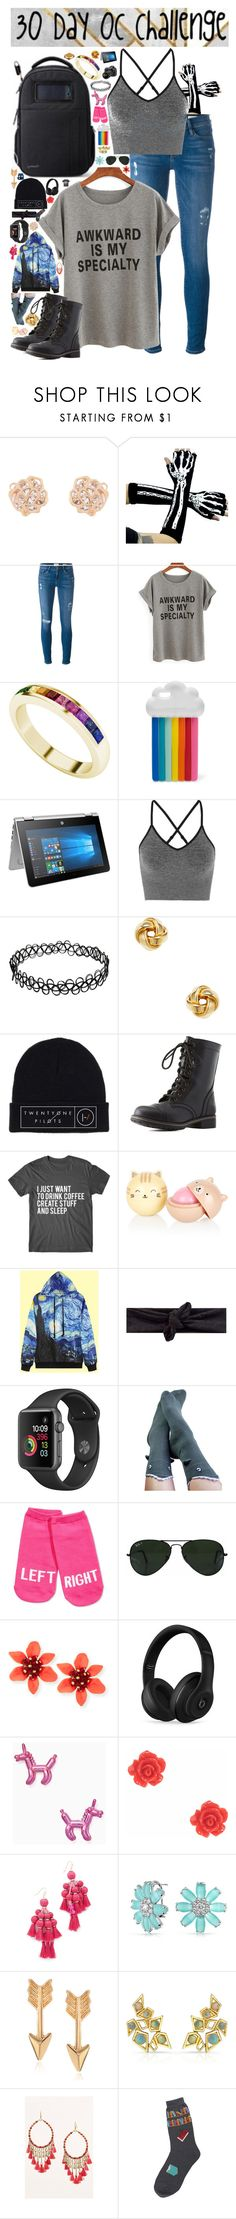 """30 Day OC challenge: Day one"" by wibbly-wobbly-timey-wimey-dork on Polyvore featuring Accessorize, Frame, StyleRocks, STELLA McCARTNEY, HP, Ivy Park, Candela, Charlotte Russe, Foot Traffic and Kate Spade"